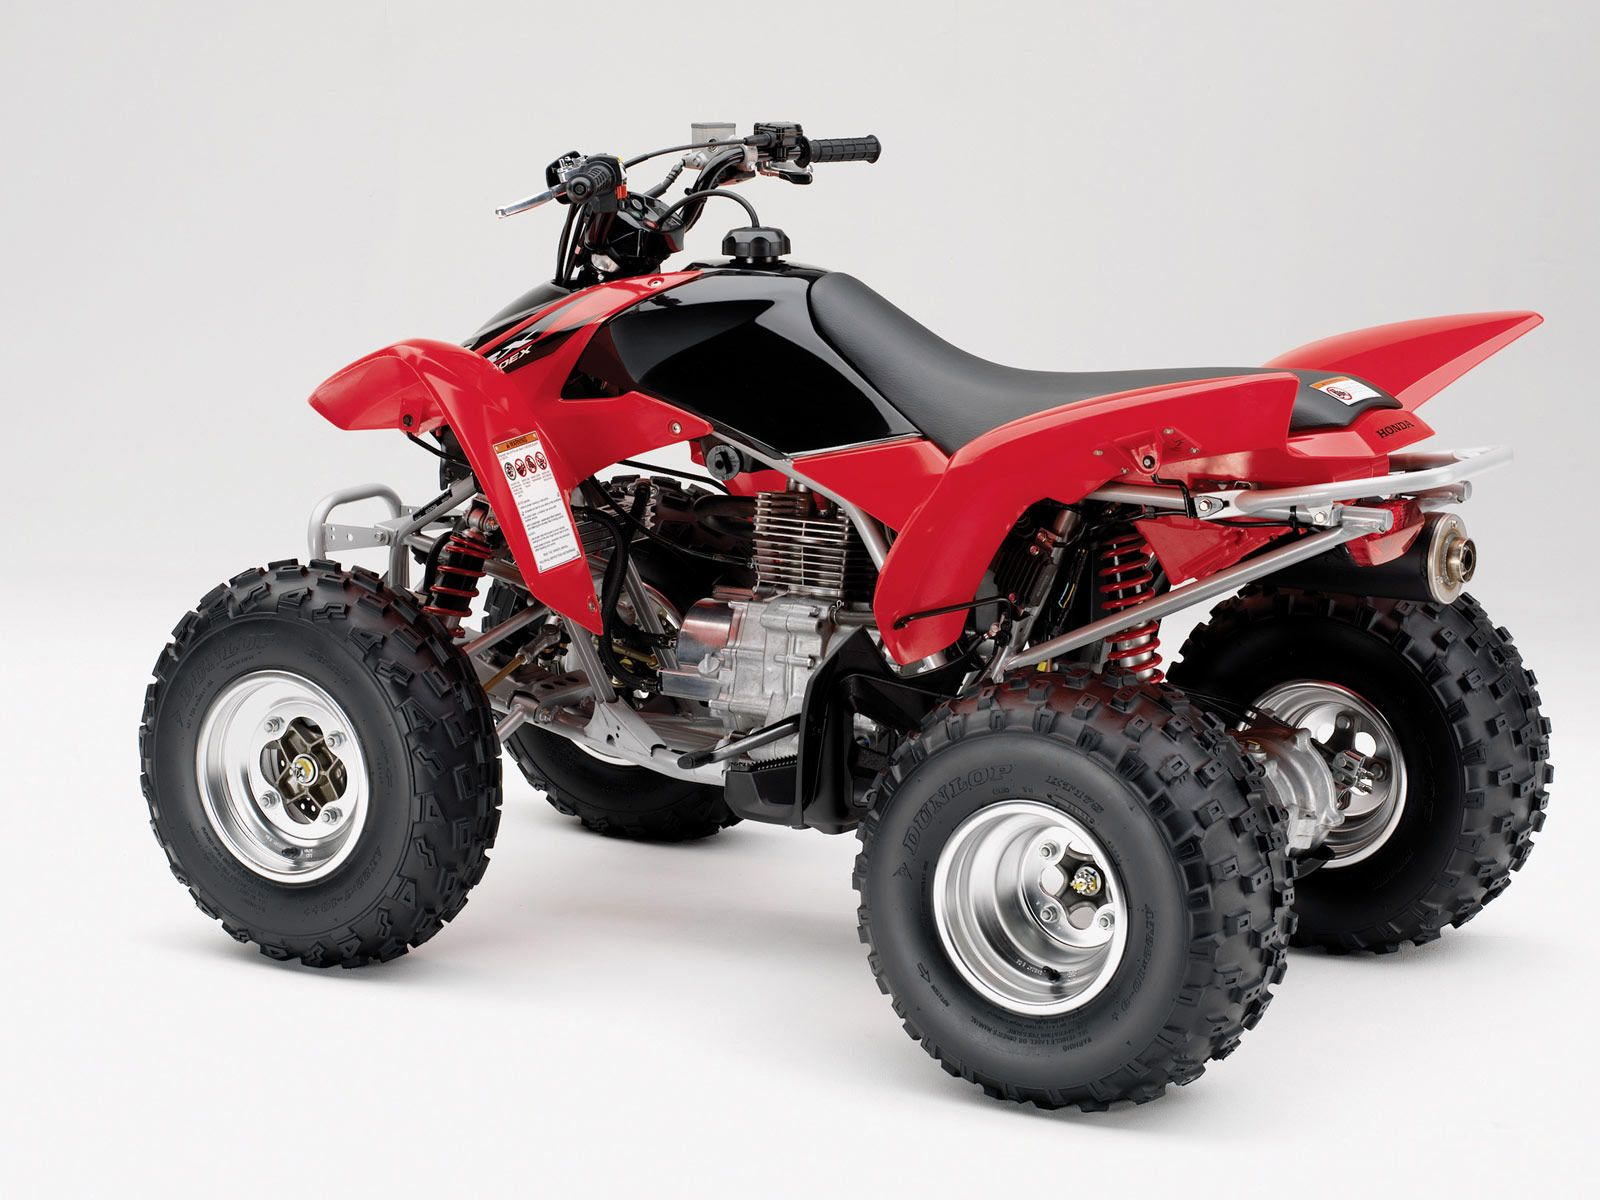 2006 Trx250ex Pictures Honda Accident Lawyers Information Honda Dirtbikes Four Wheelers